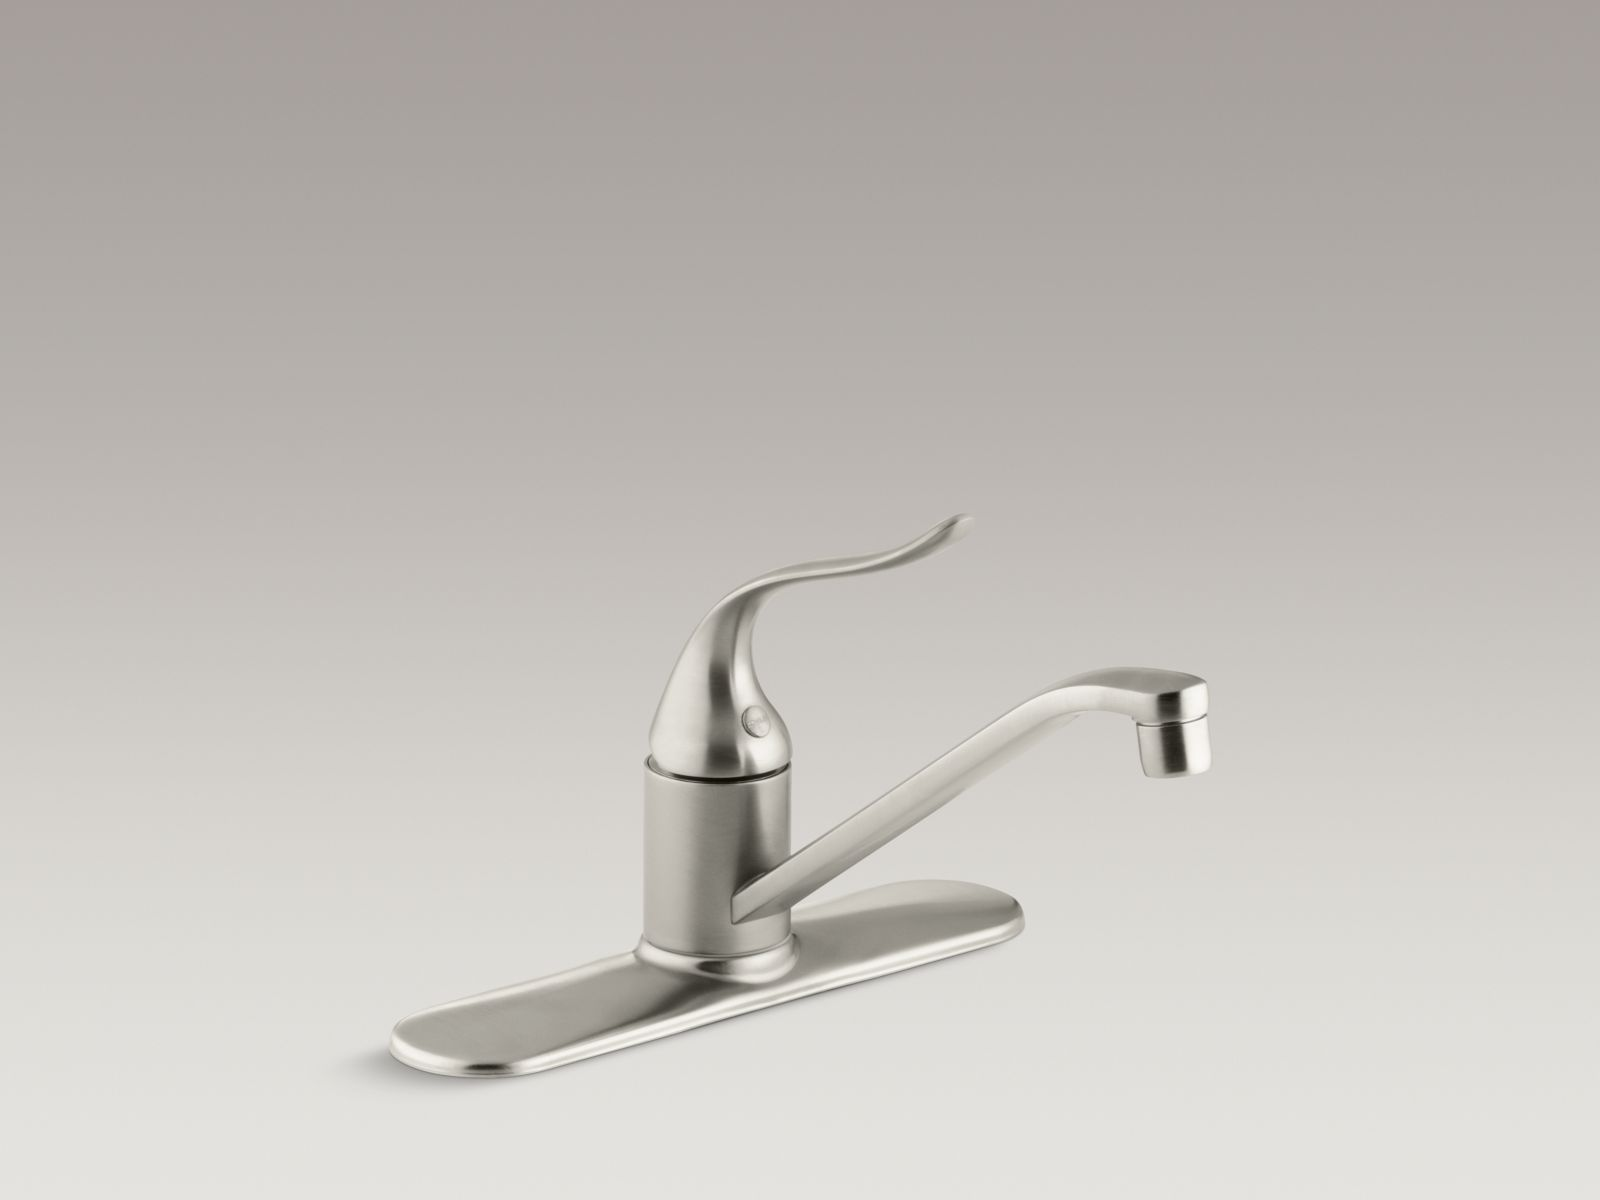 "Kohler K-15171-F-BN Coralais Single-handle Kitchen Faucet with 8-1/2"" Spout, Escutcheon, and Lever Handle Vibrant Brushed Nickel"